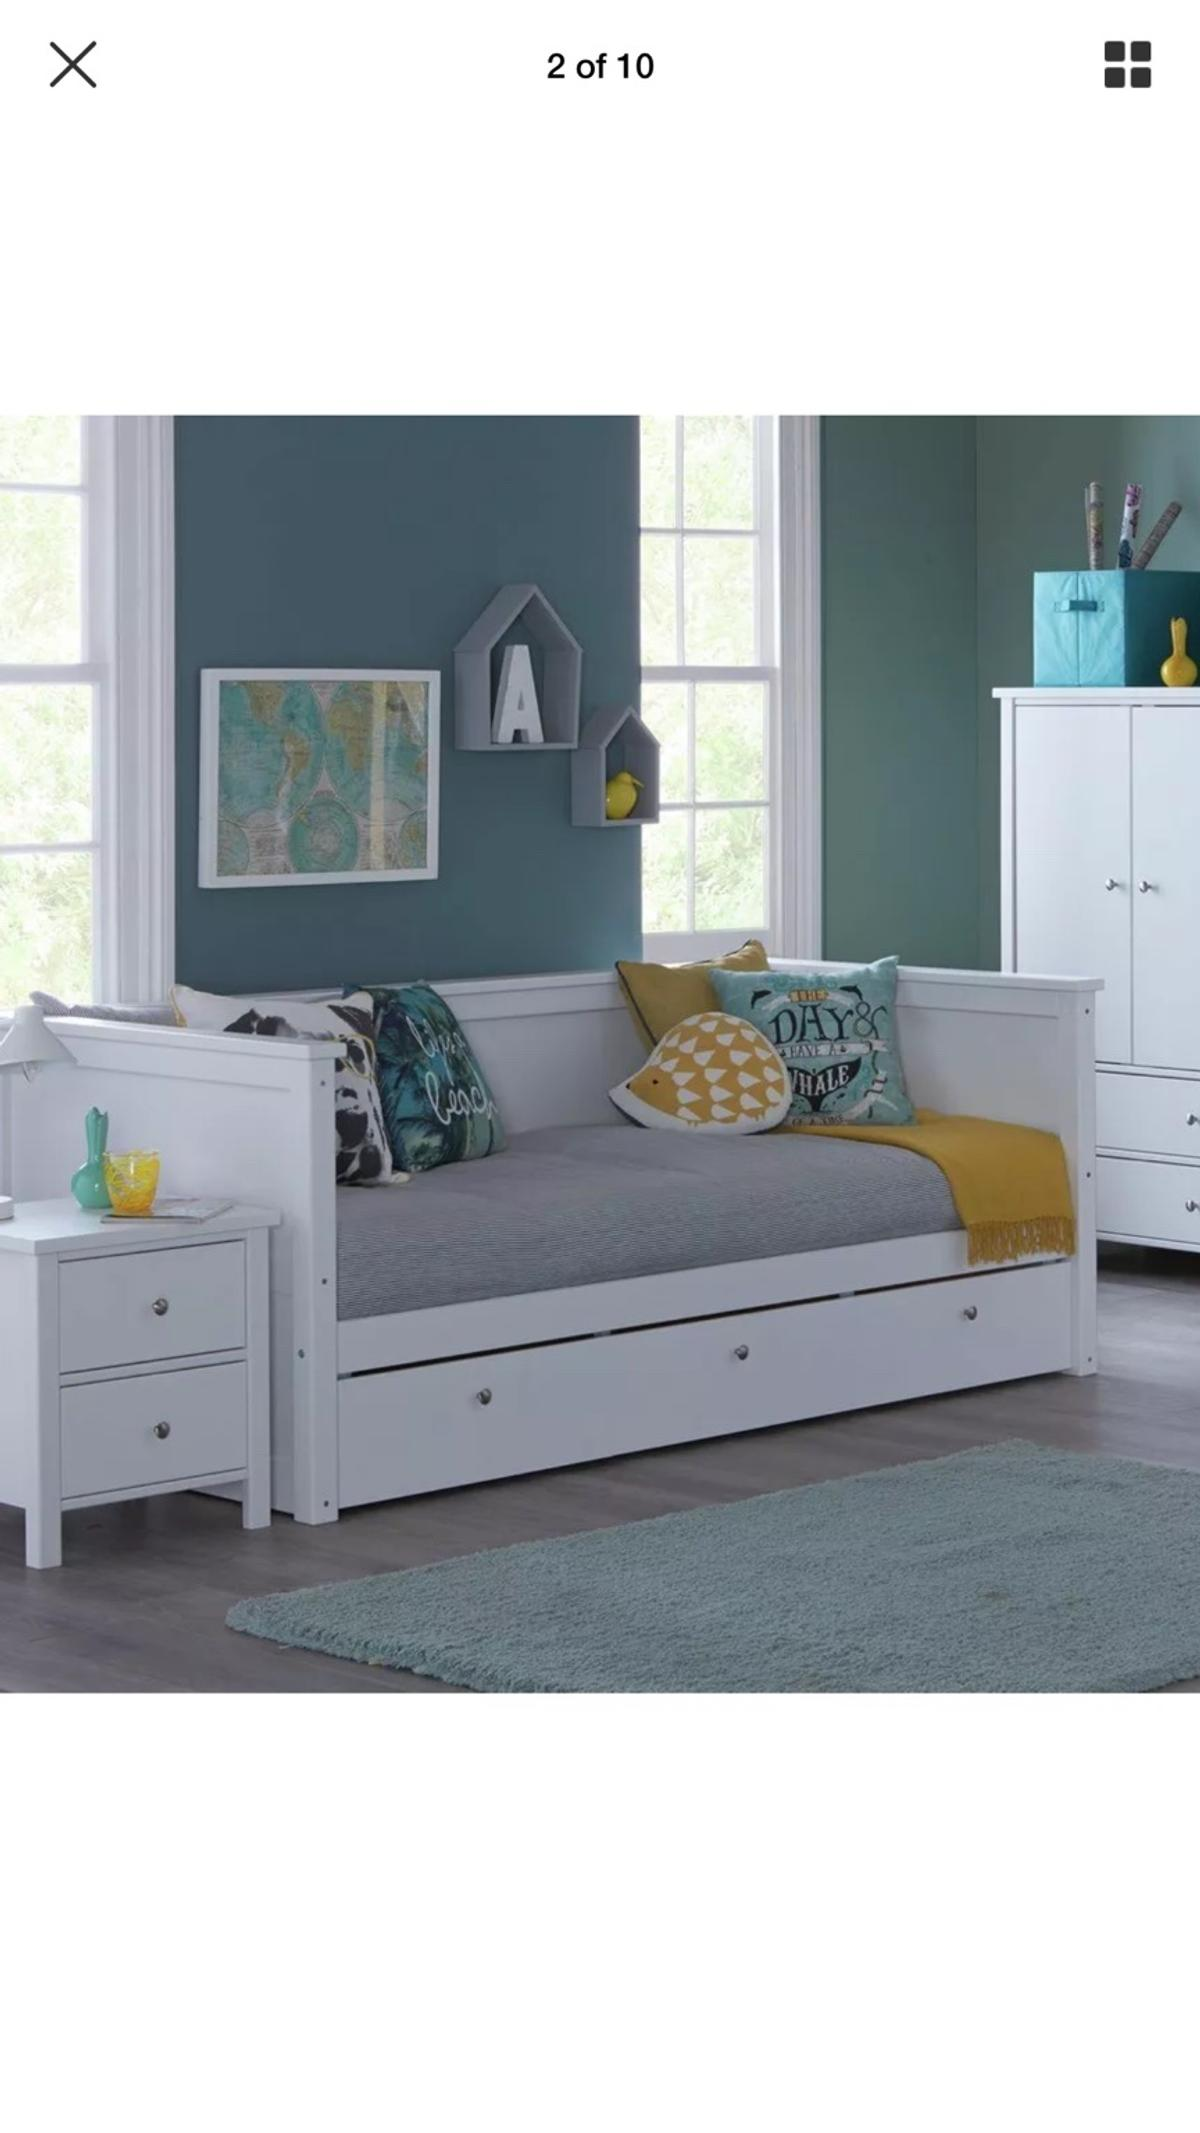 Argos Single Day Bed With Storage In En11 Broxbourne For 90 00 For Sale Shpock